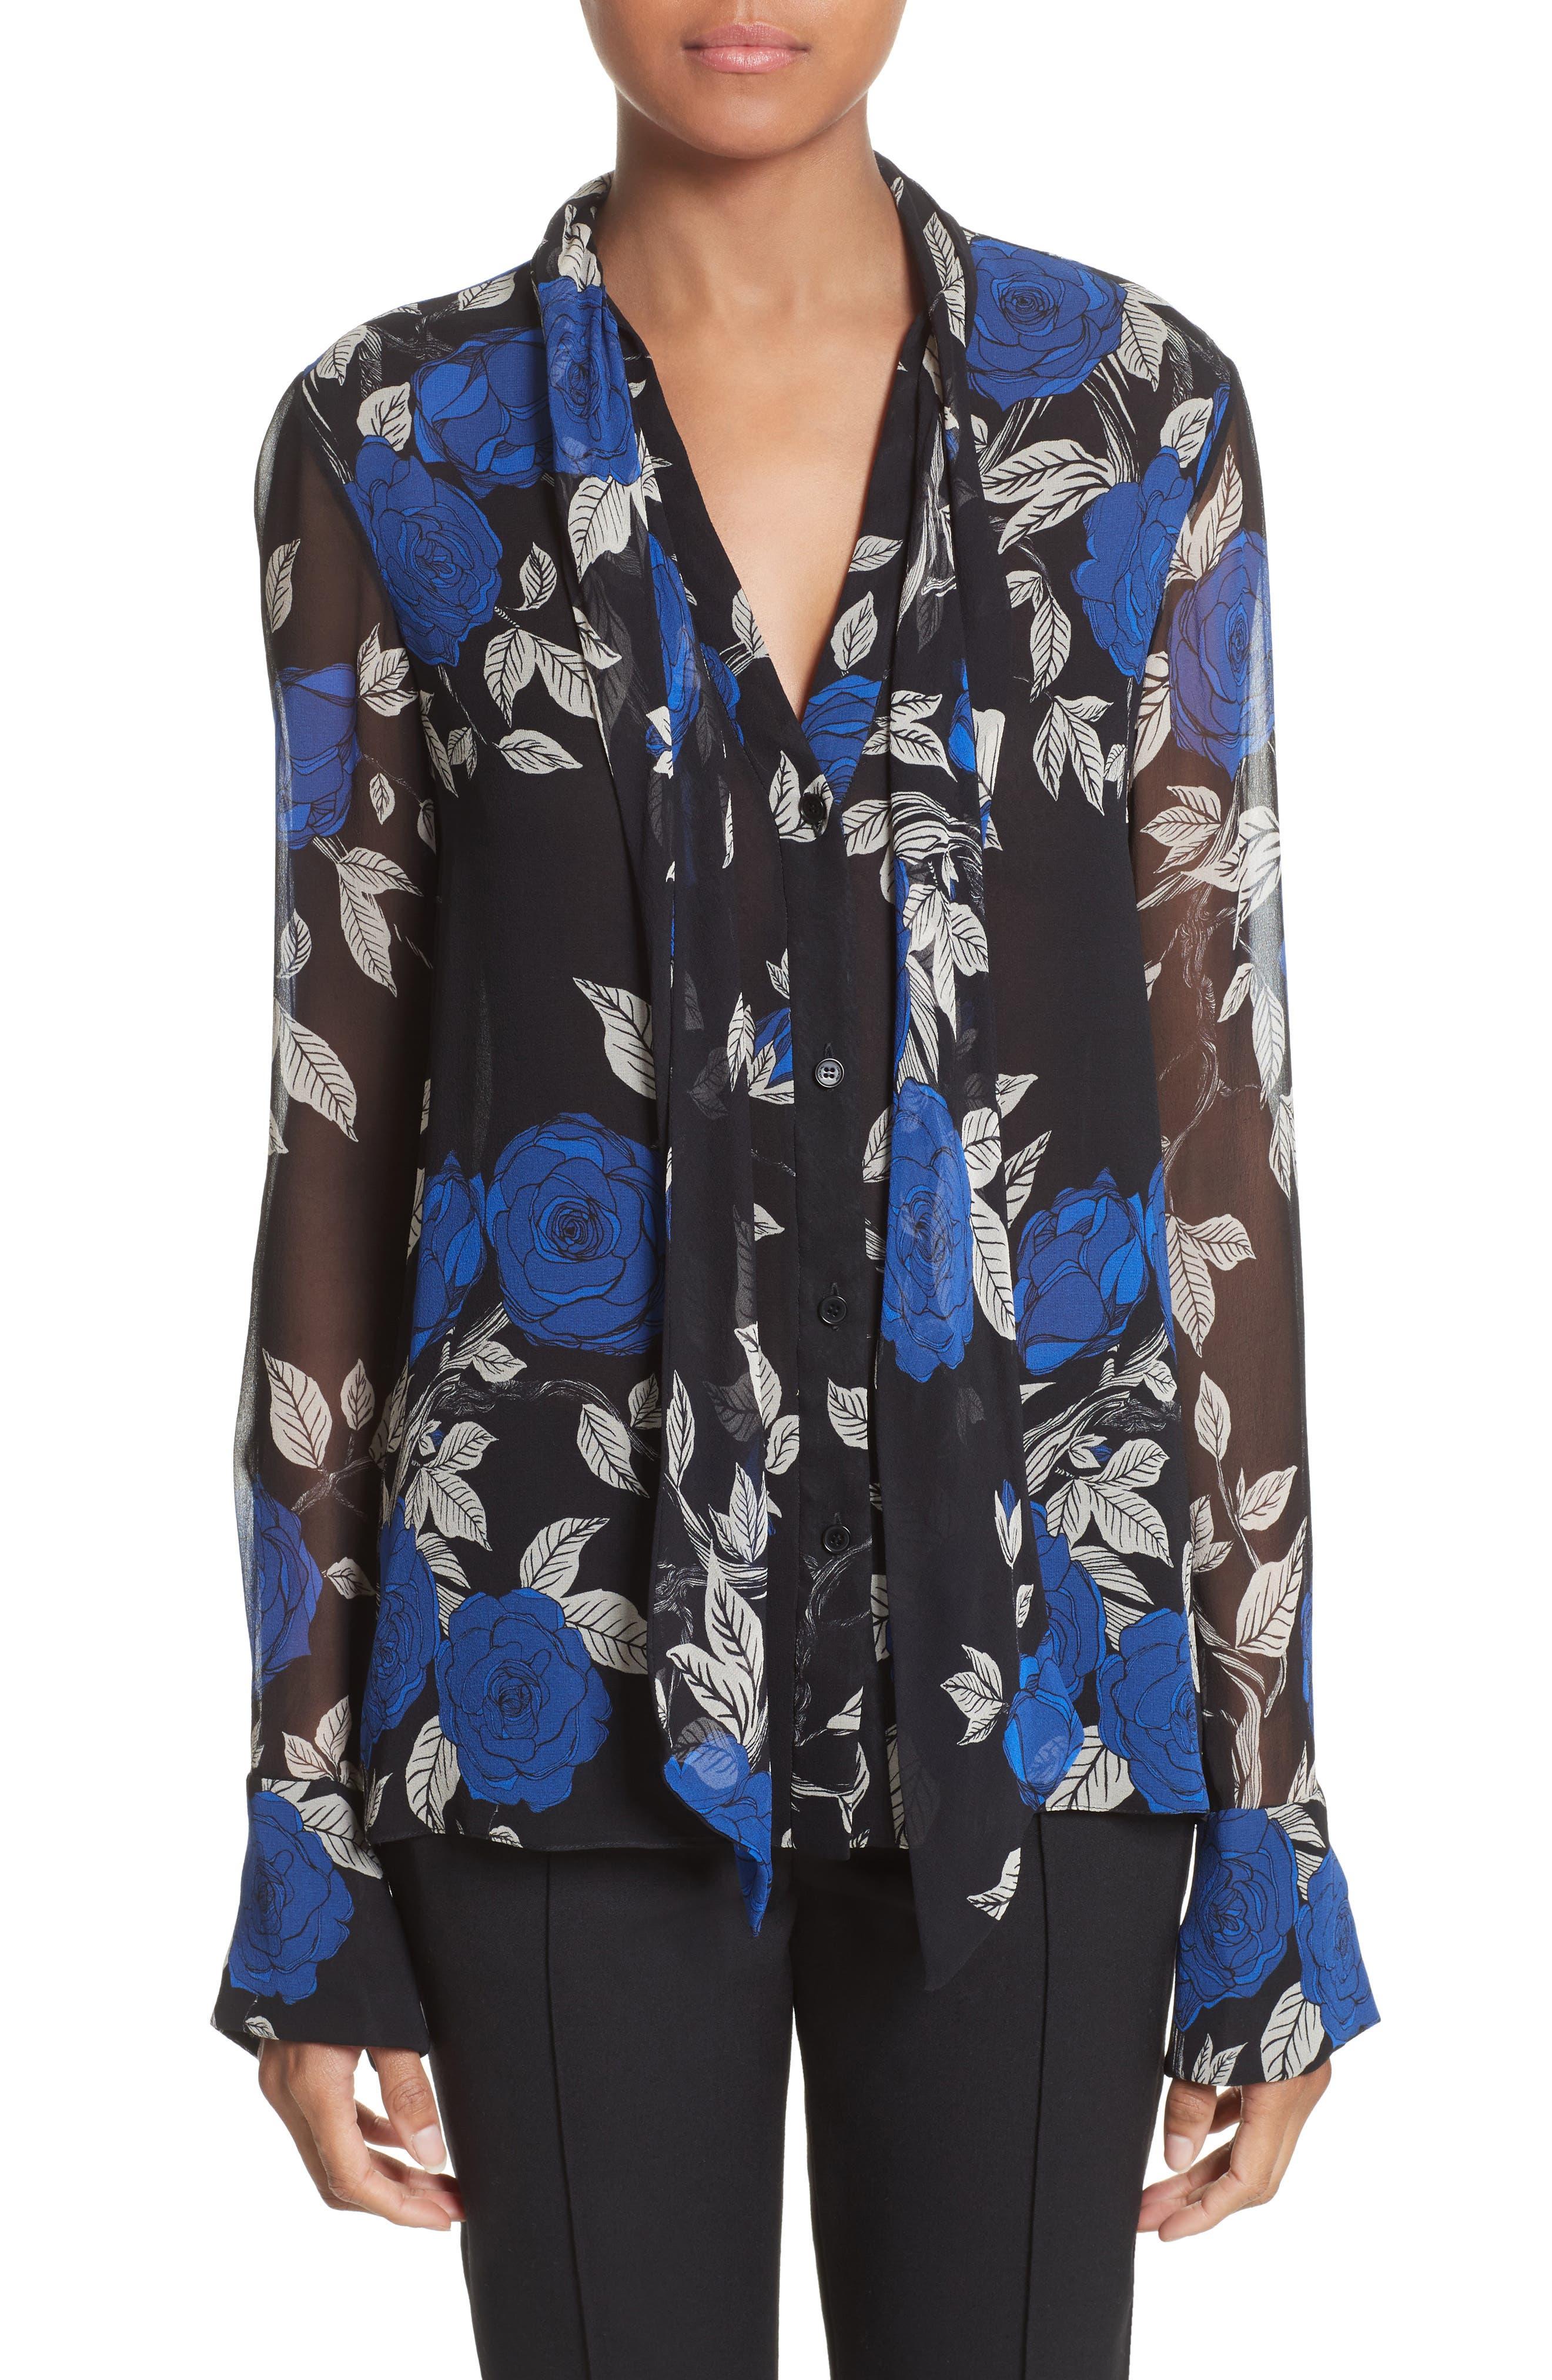 Jason Wu Floral Silk Tie Neck Blouse